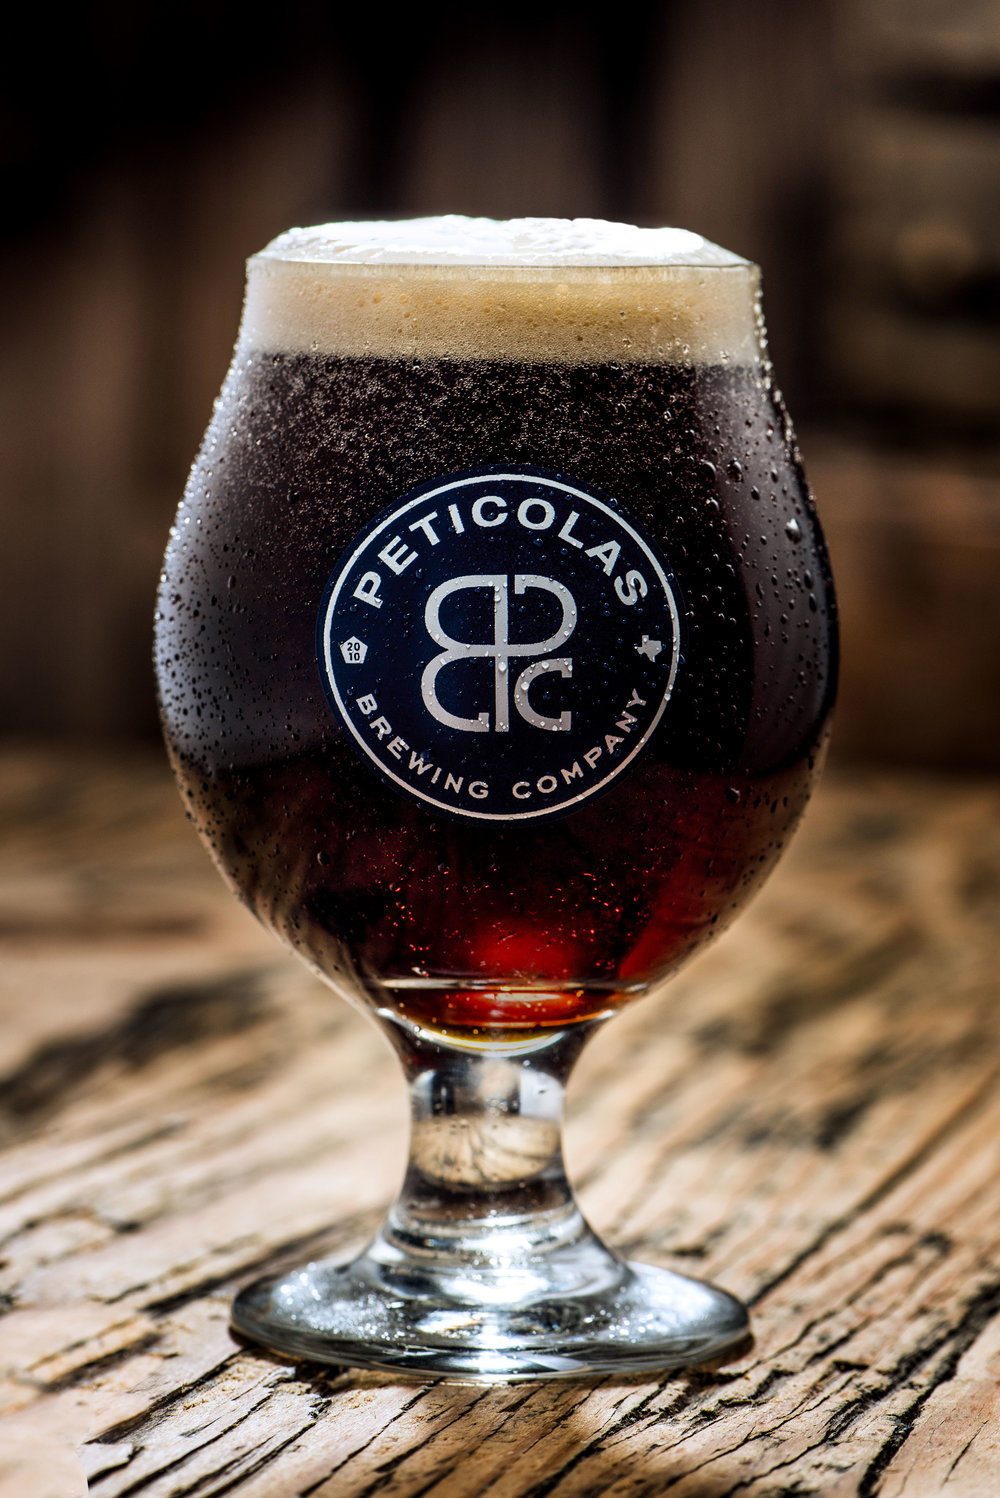 peticolas-629-Edit.jpg